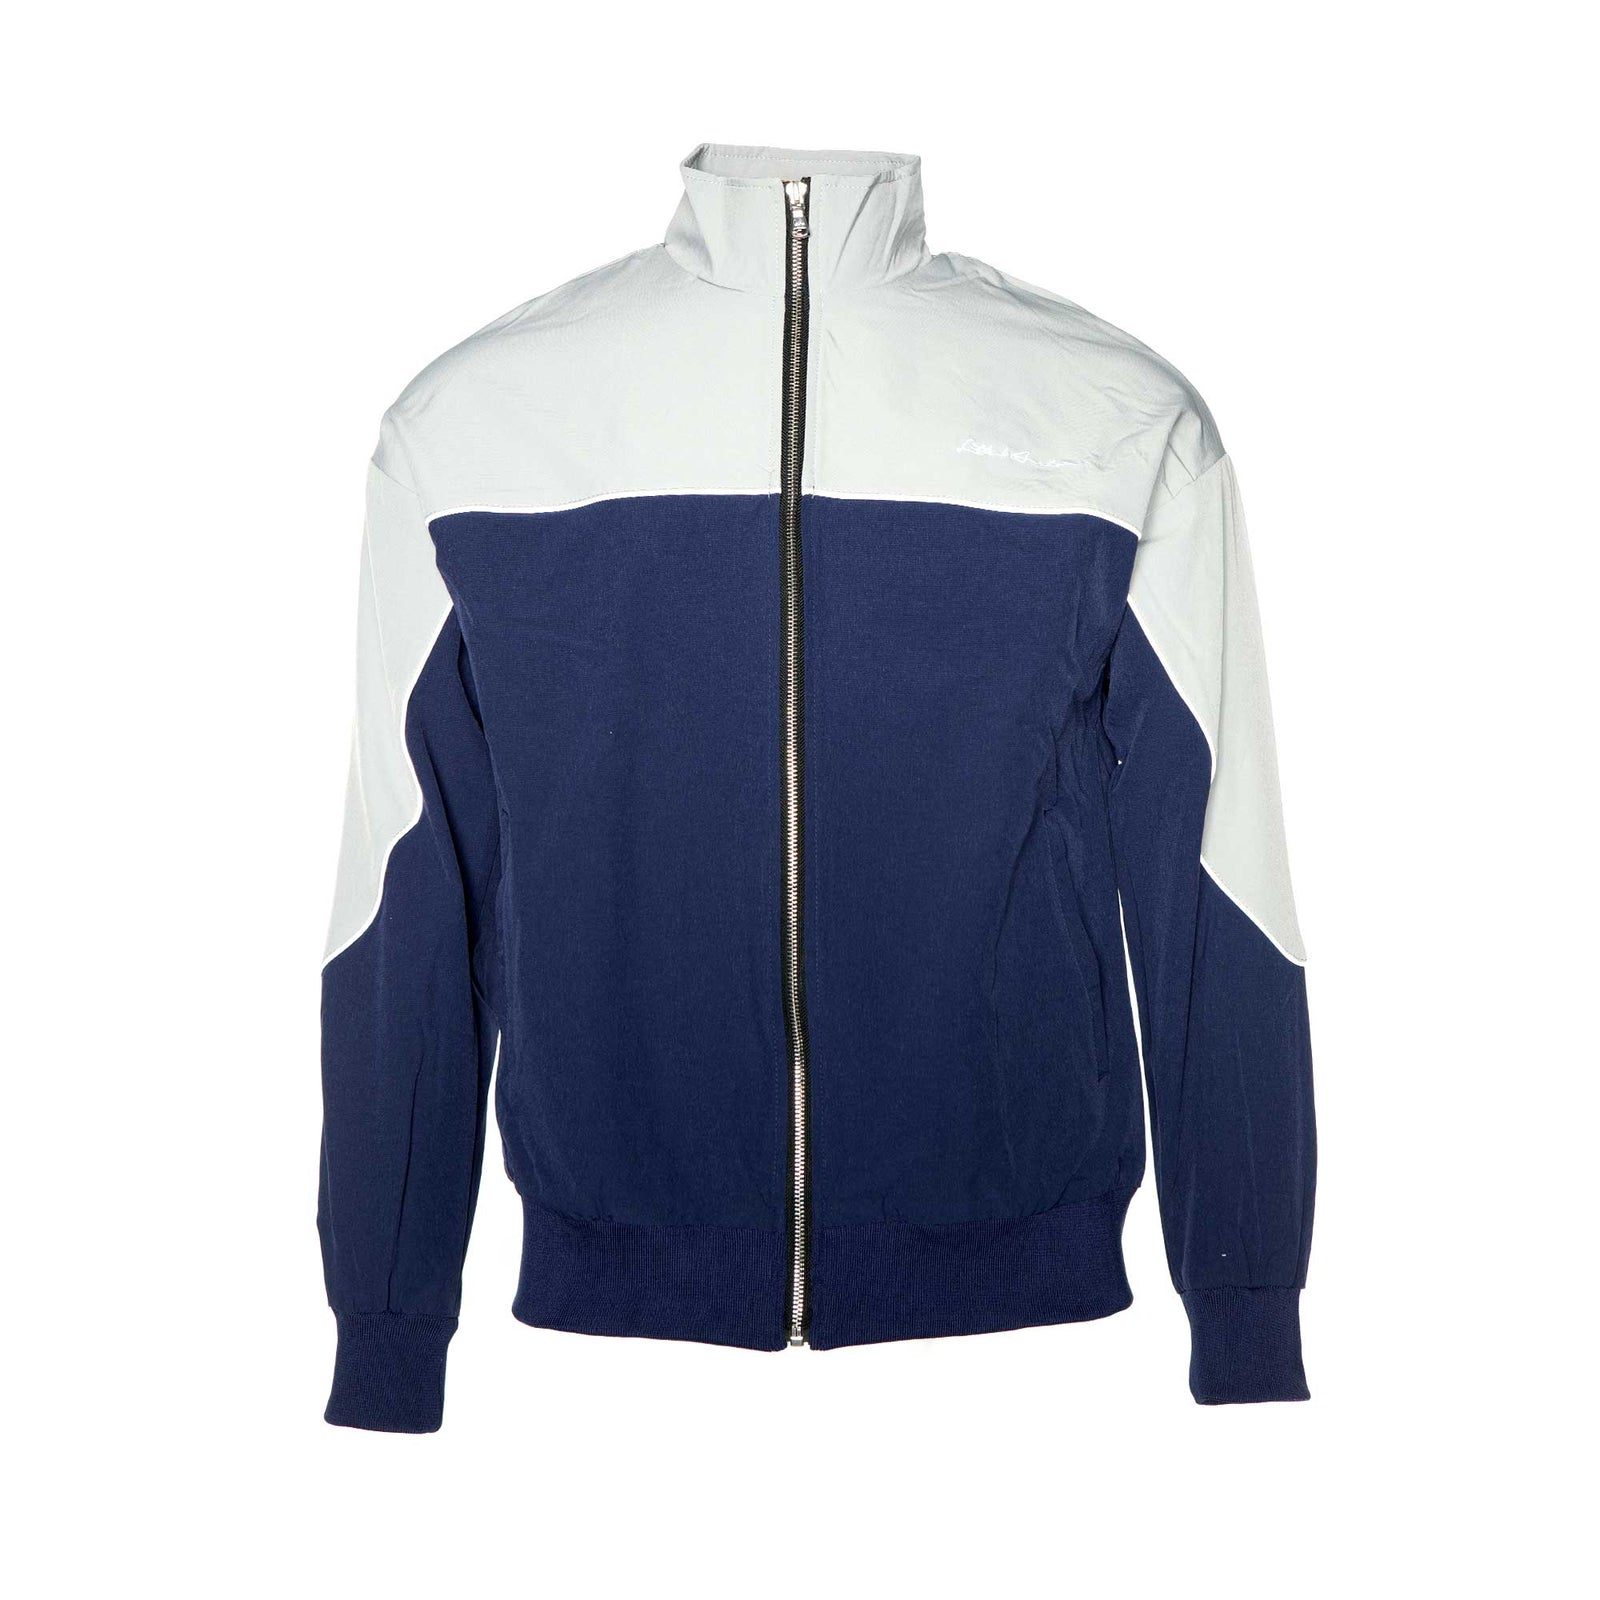 Lifted Anchors Men's Turini Track Jacket